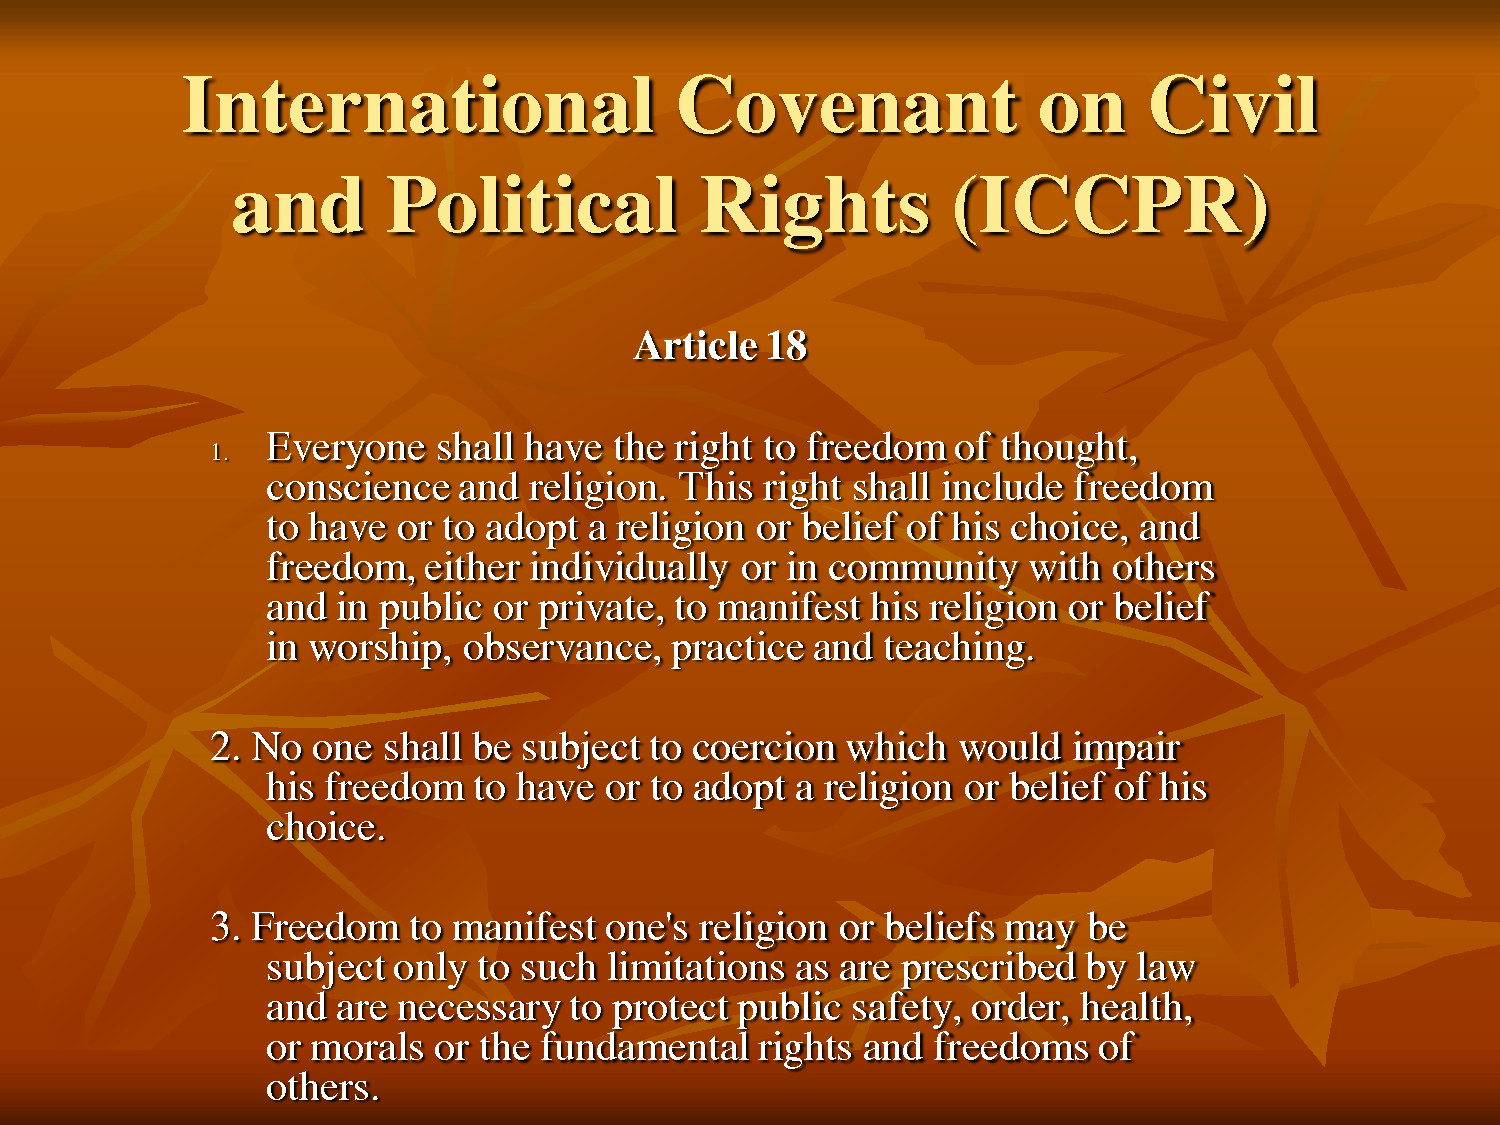 International Convenant on Civil and Political Rights